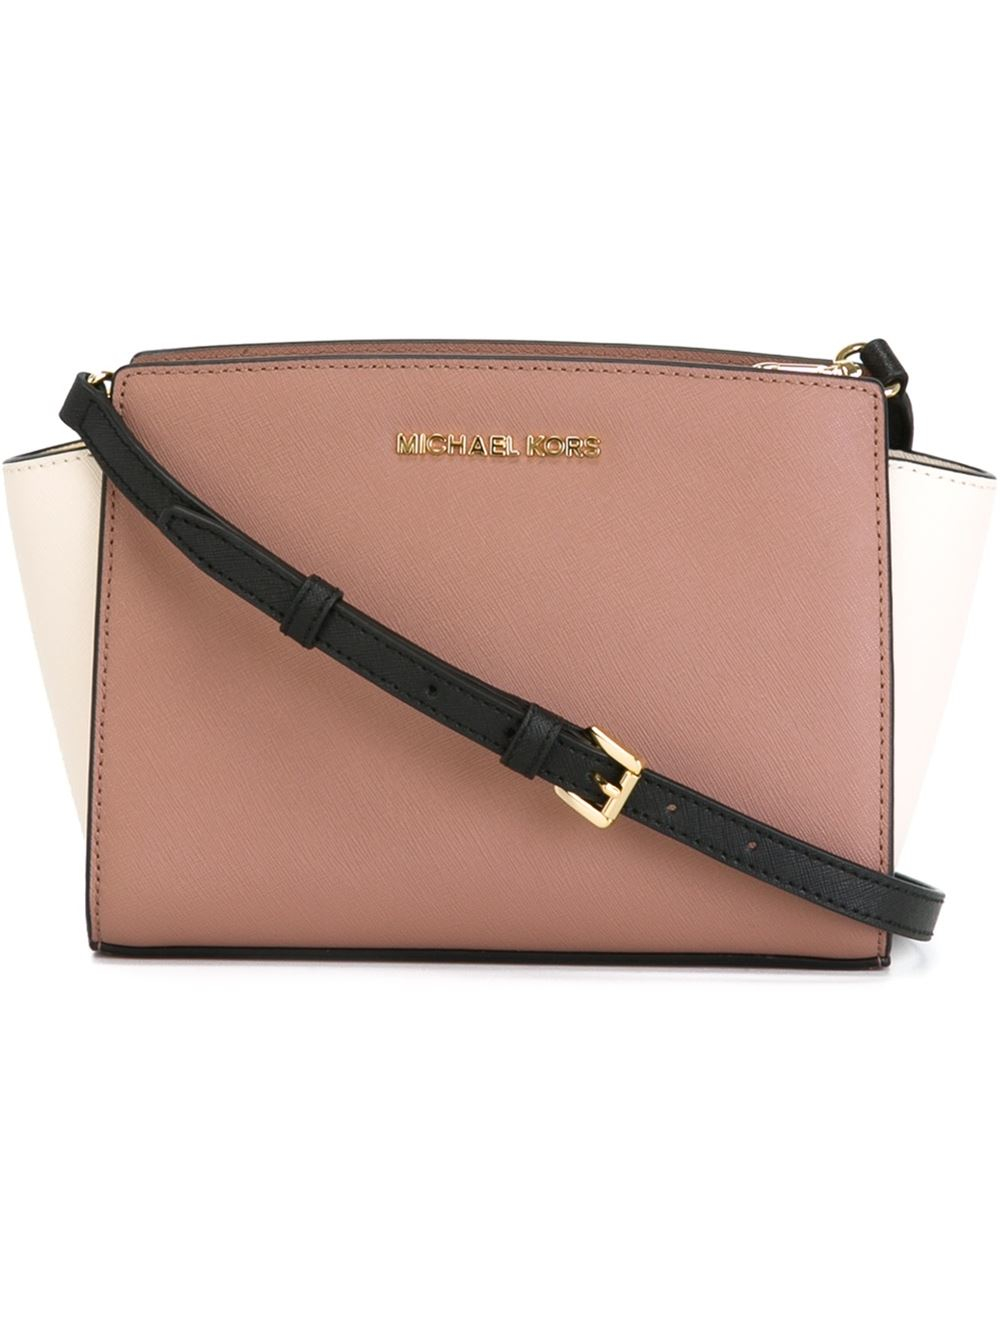 facd2caddfd6 Gallery. Previously sold at: TESSABIT · Women's Michael By Michael Kors  Selma